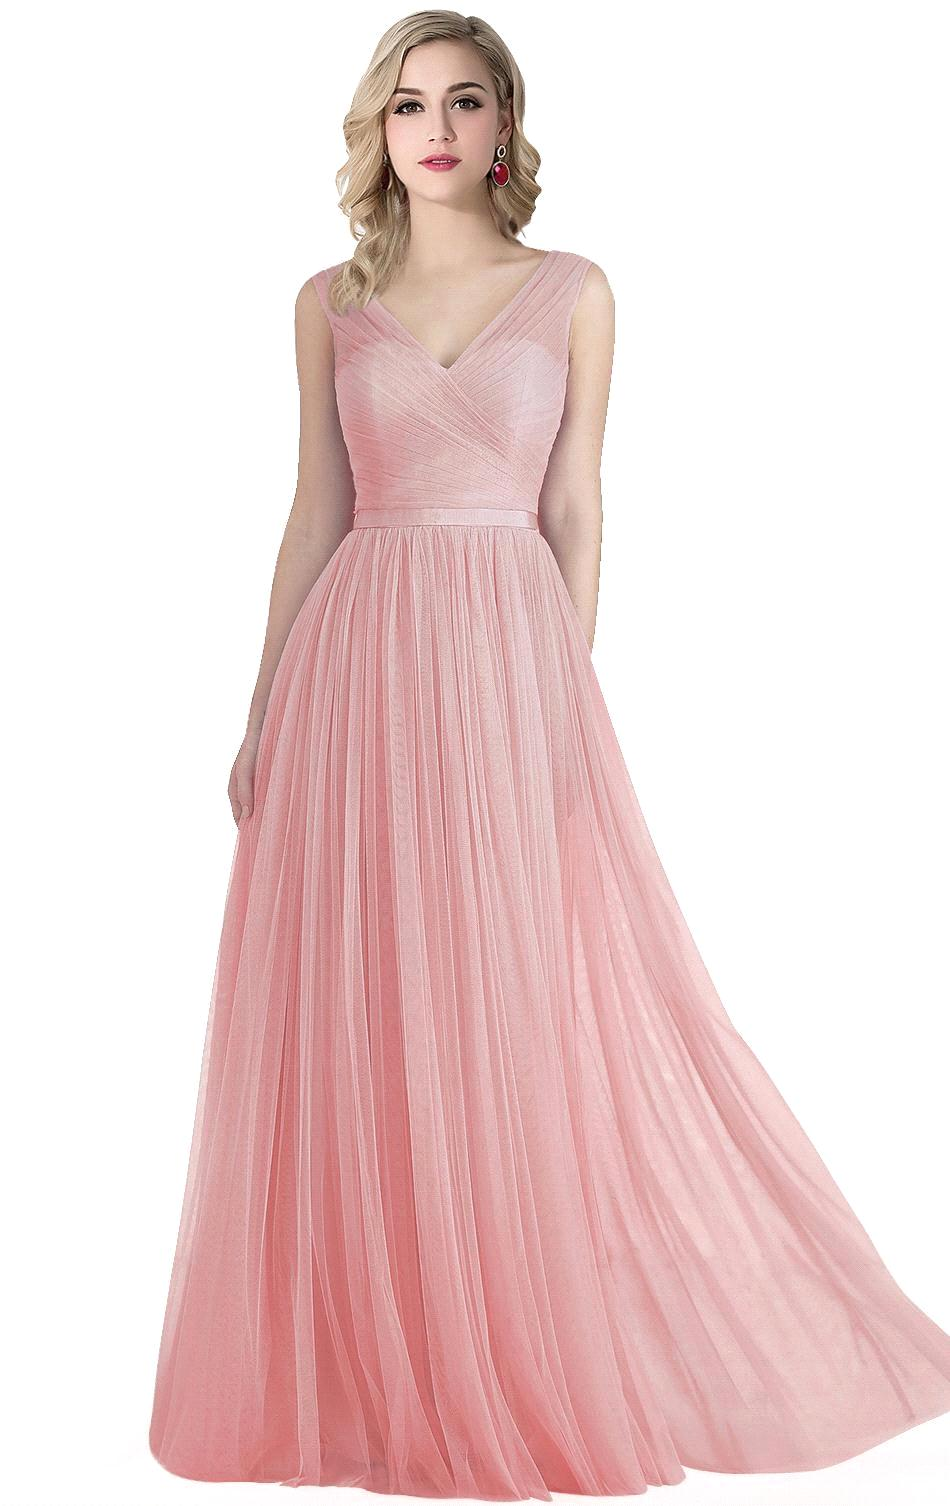 Cheap pink deep v neck mint green long bridesmaid dresses 2017 cheap pink deep v neck mint green long bridesmaid dresses 2017 floor length soft tulle vestido de festa prom party gown in bridesmaid dresses from weddings ombrellifo Image collections